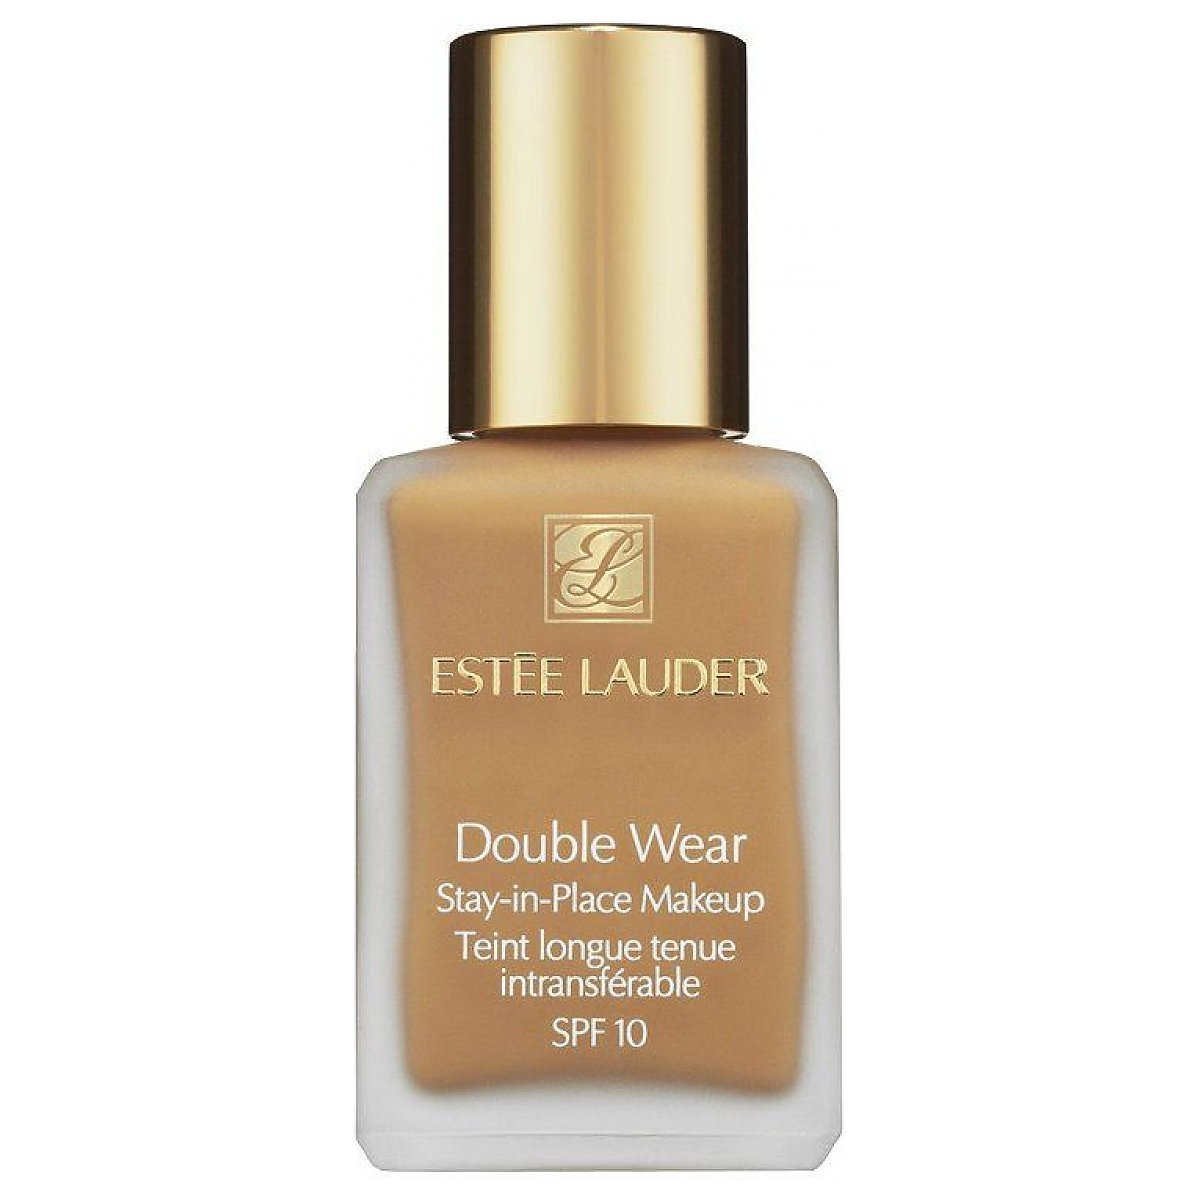 Estee Lauder Double Wear Stay-in-place Makeup Foundation 1n1 Ivory Nude 1oz for sale online | eBay